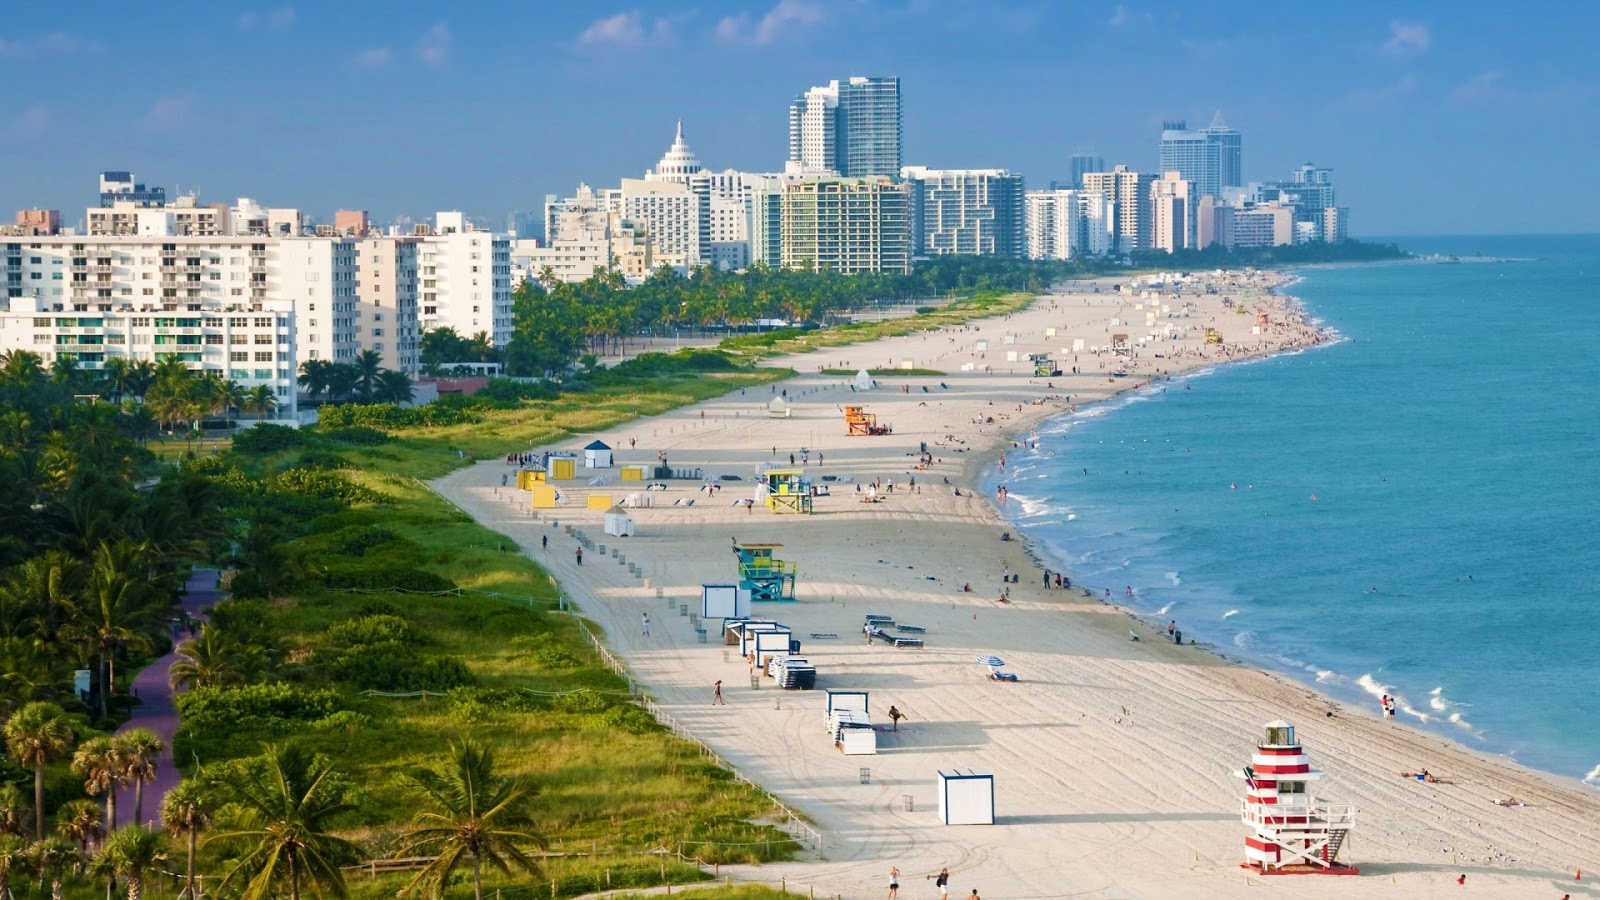 Miami Beach Full HD Desktop Wallpapers 1080p 1600x900